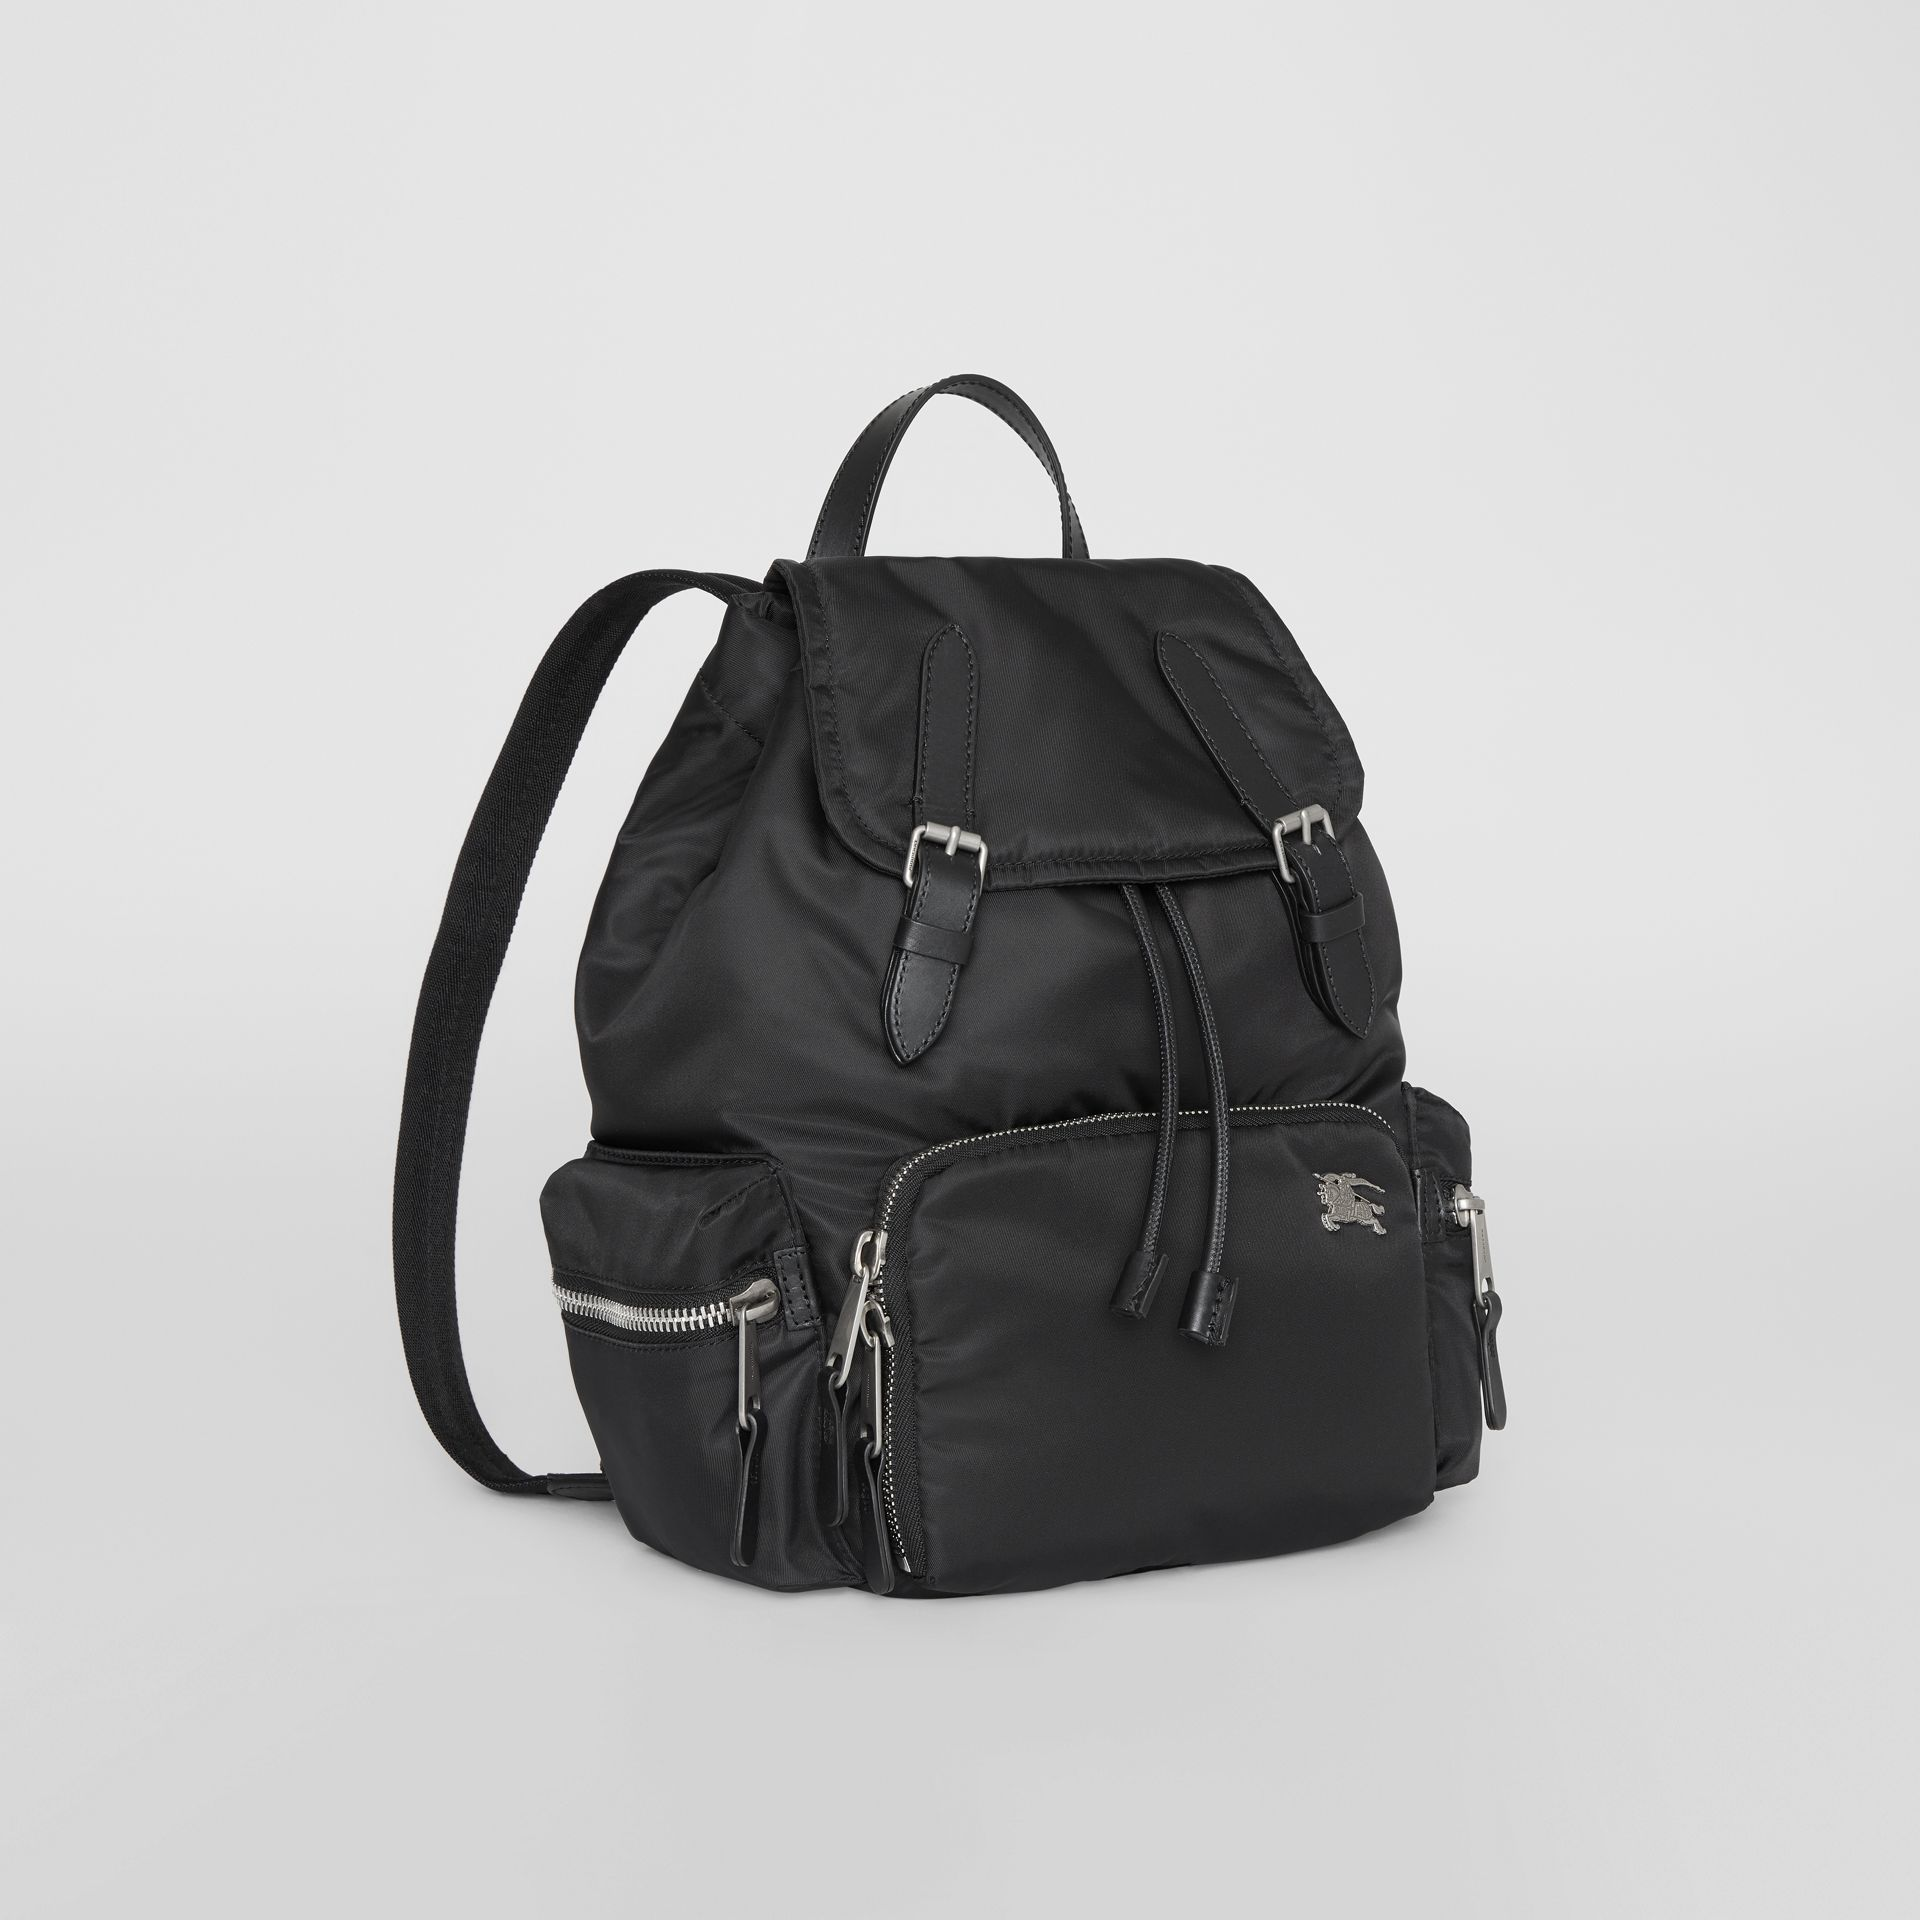 Sac The Rucksack moyen en nylon et cuir (Noir) - Femme | Burberry - photo de la galerie 6